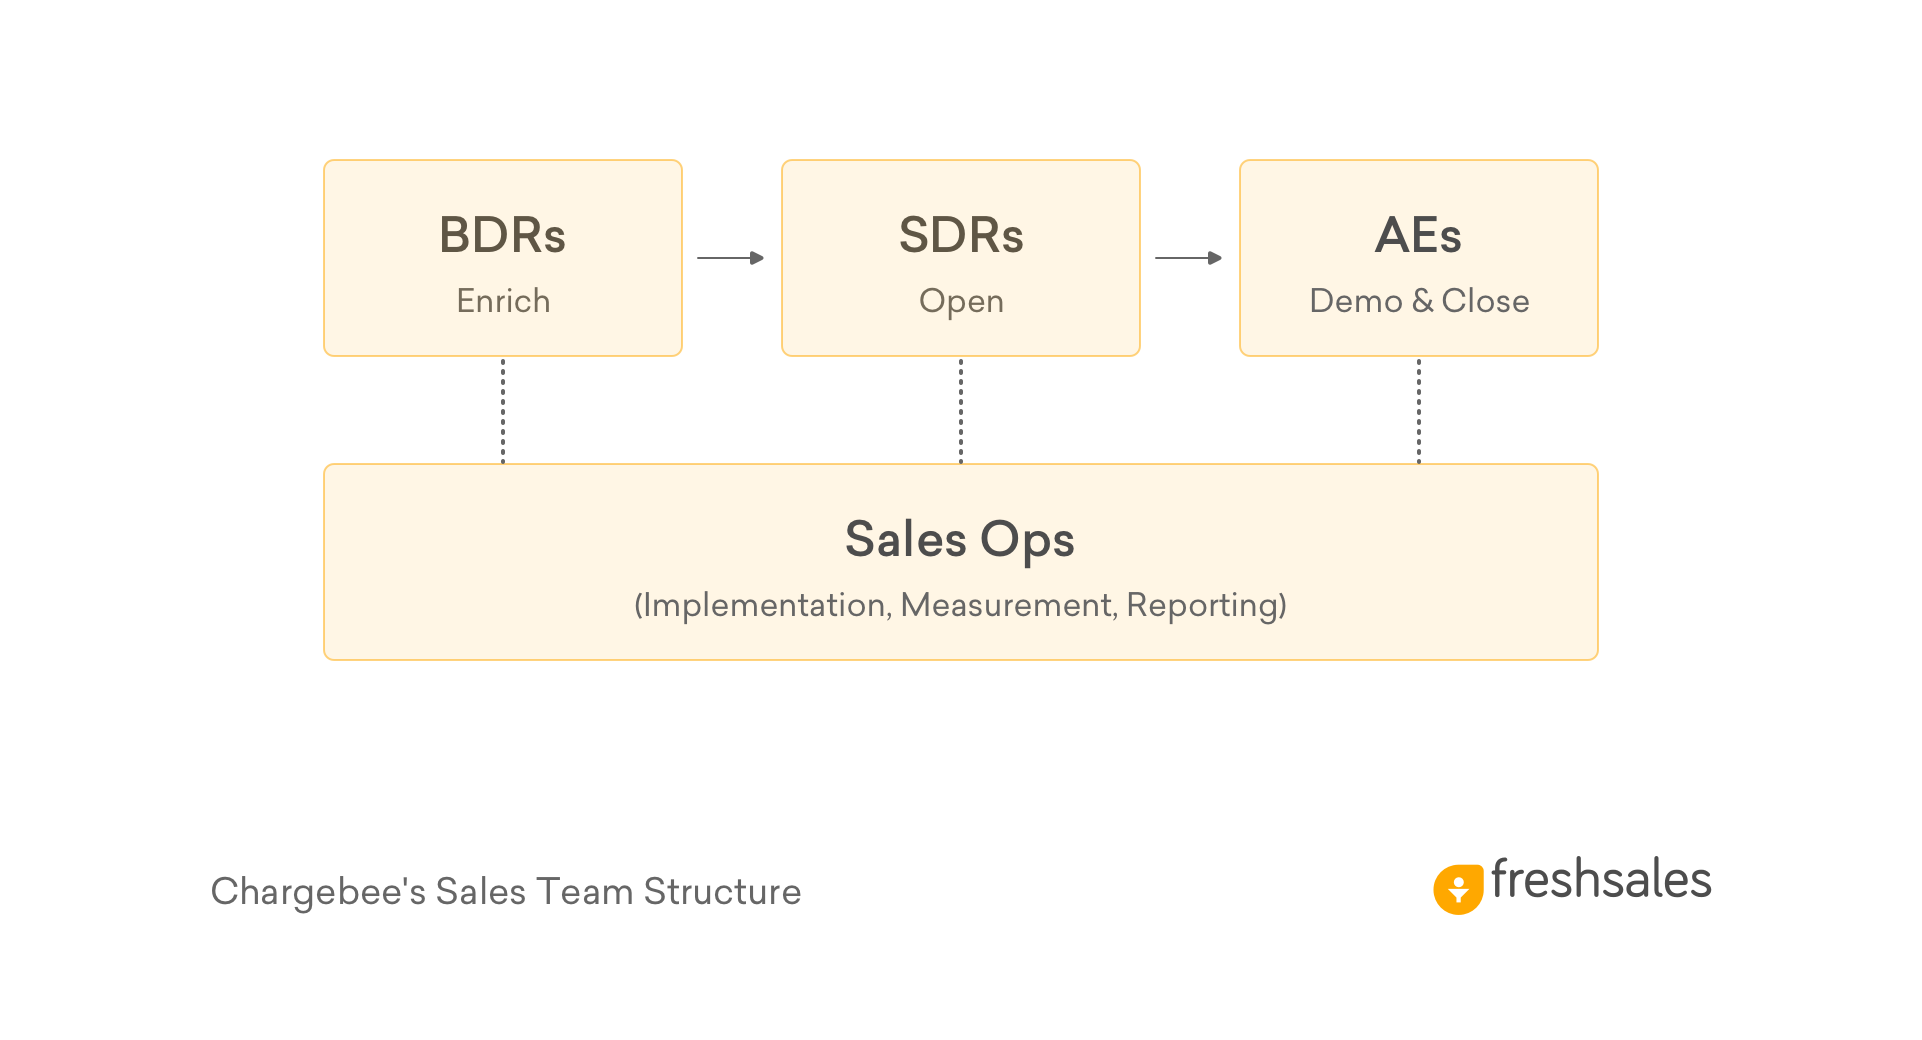 Chargebee Sales Team Structure